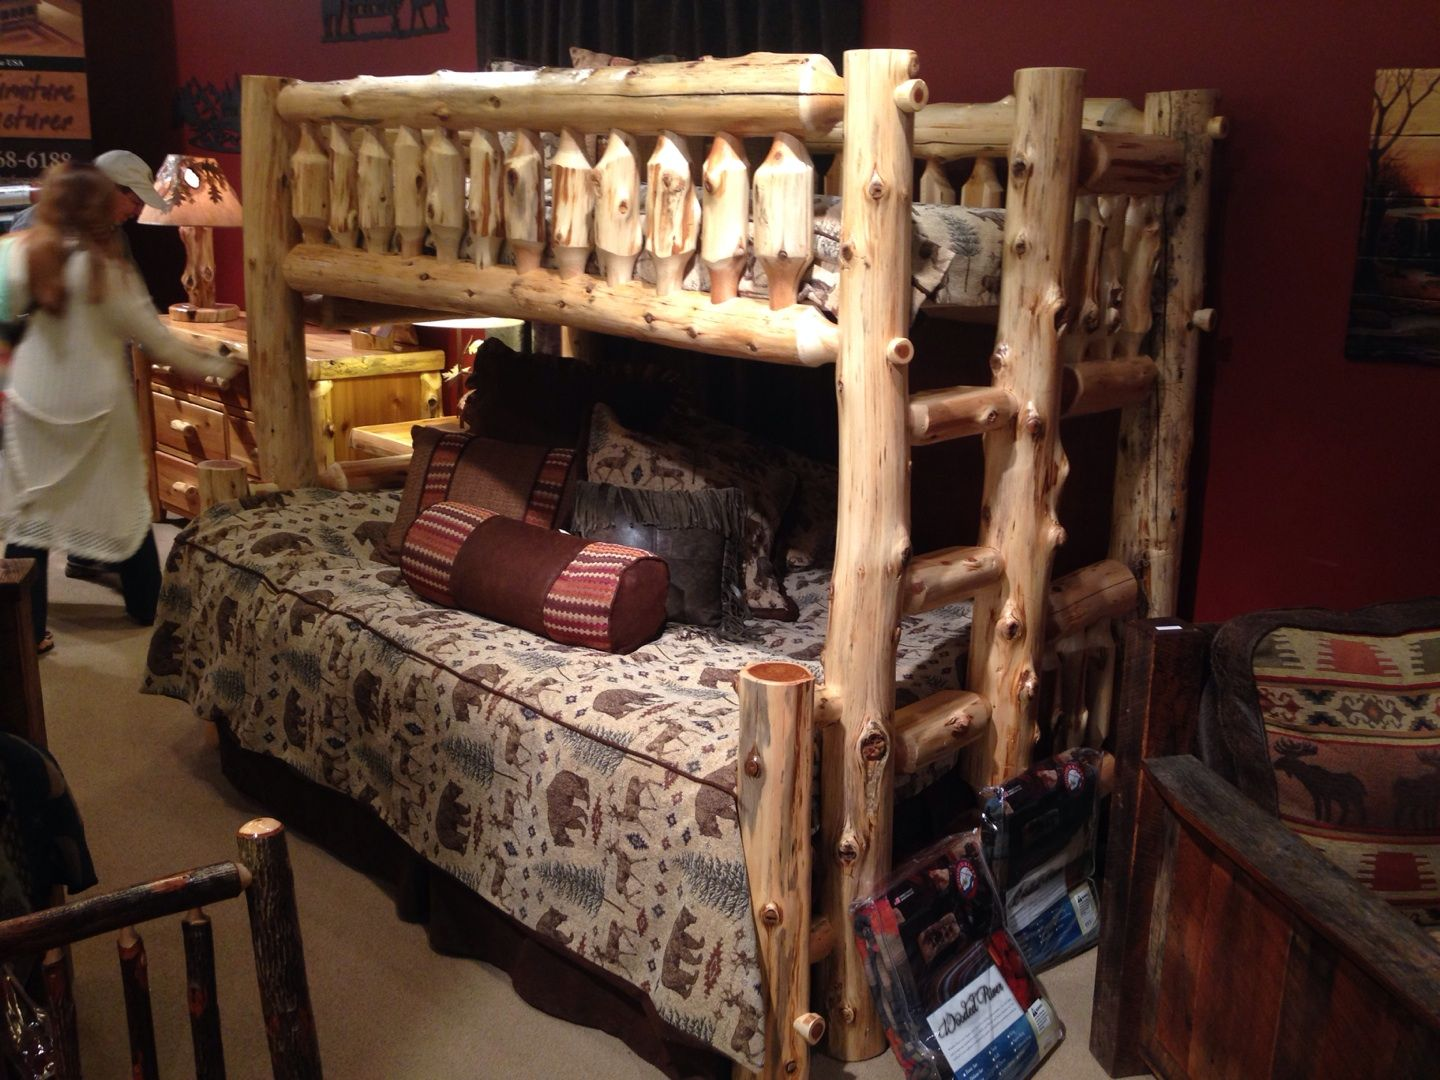 This is such a great rustic looking bunk bed. Would your